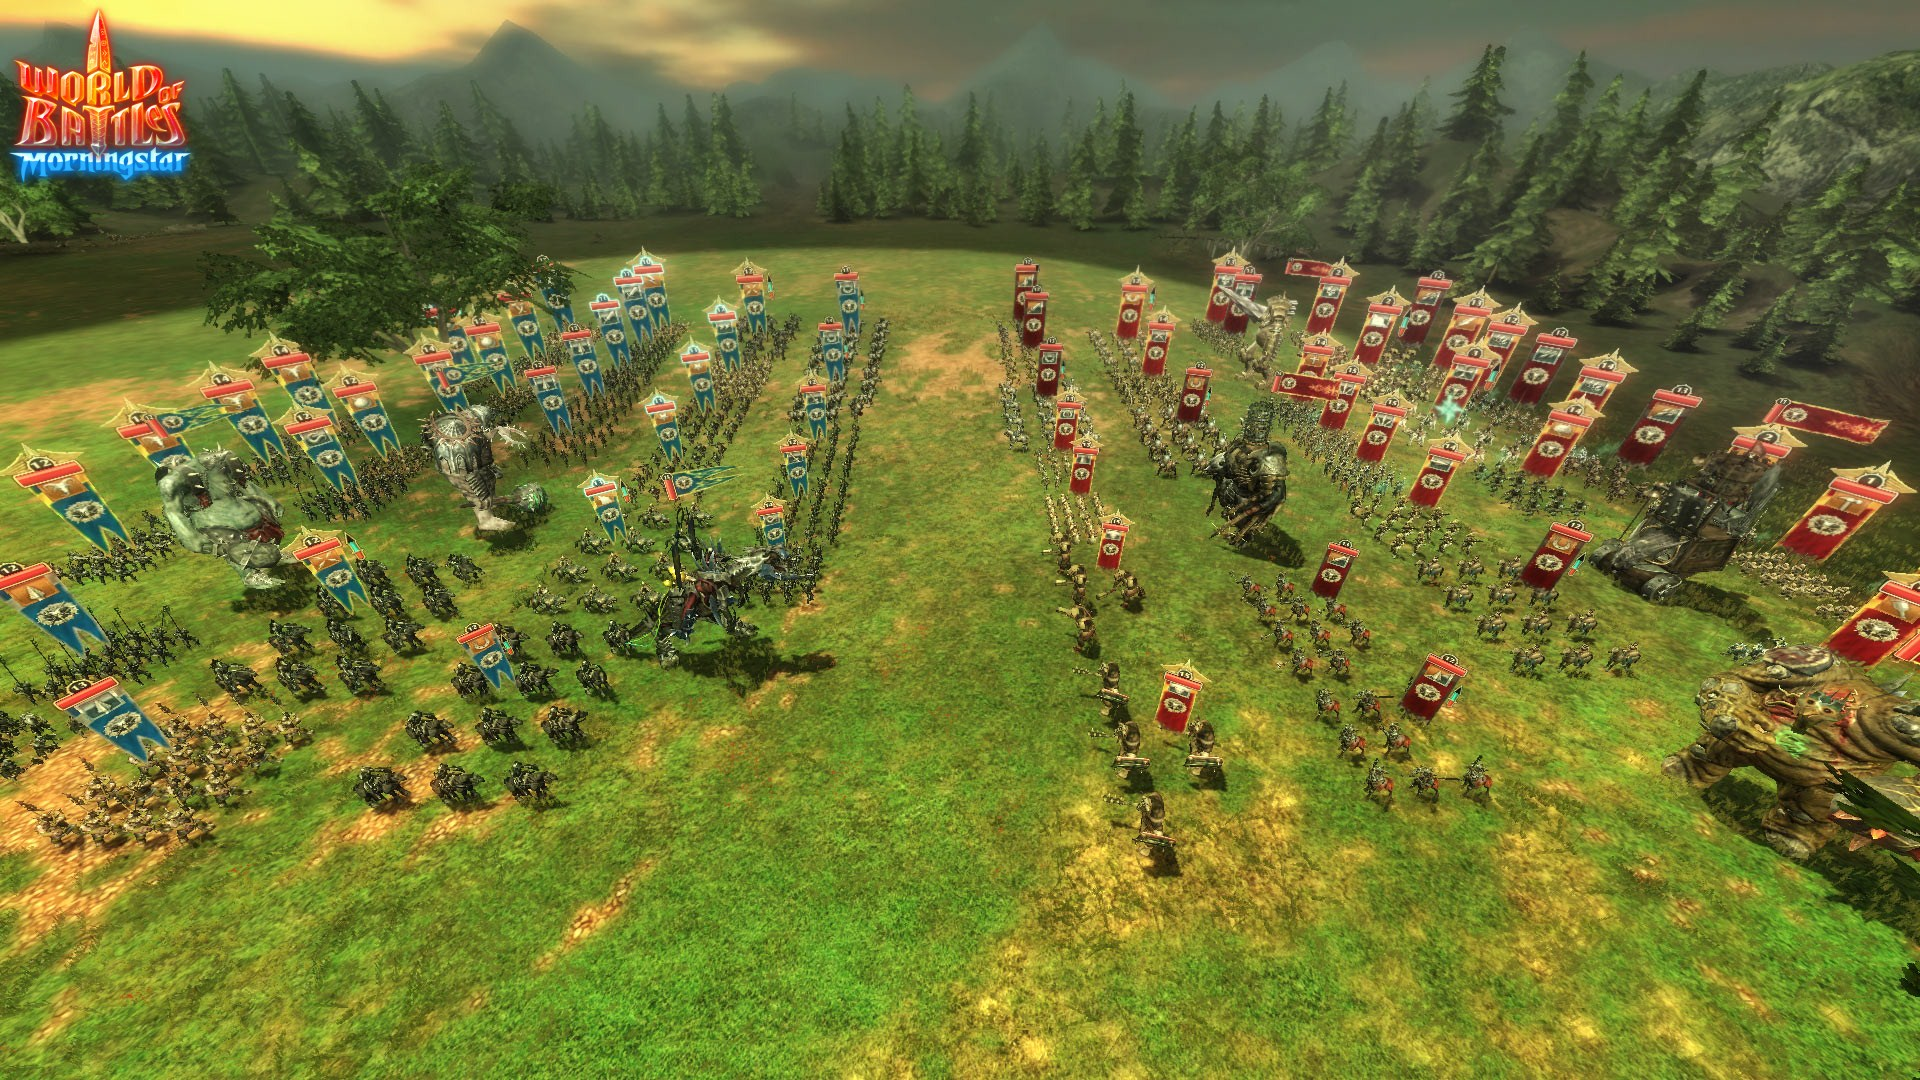 world_of_battles_screenshot_3